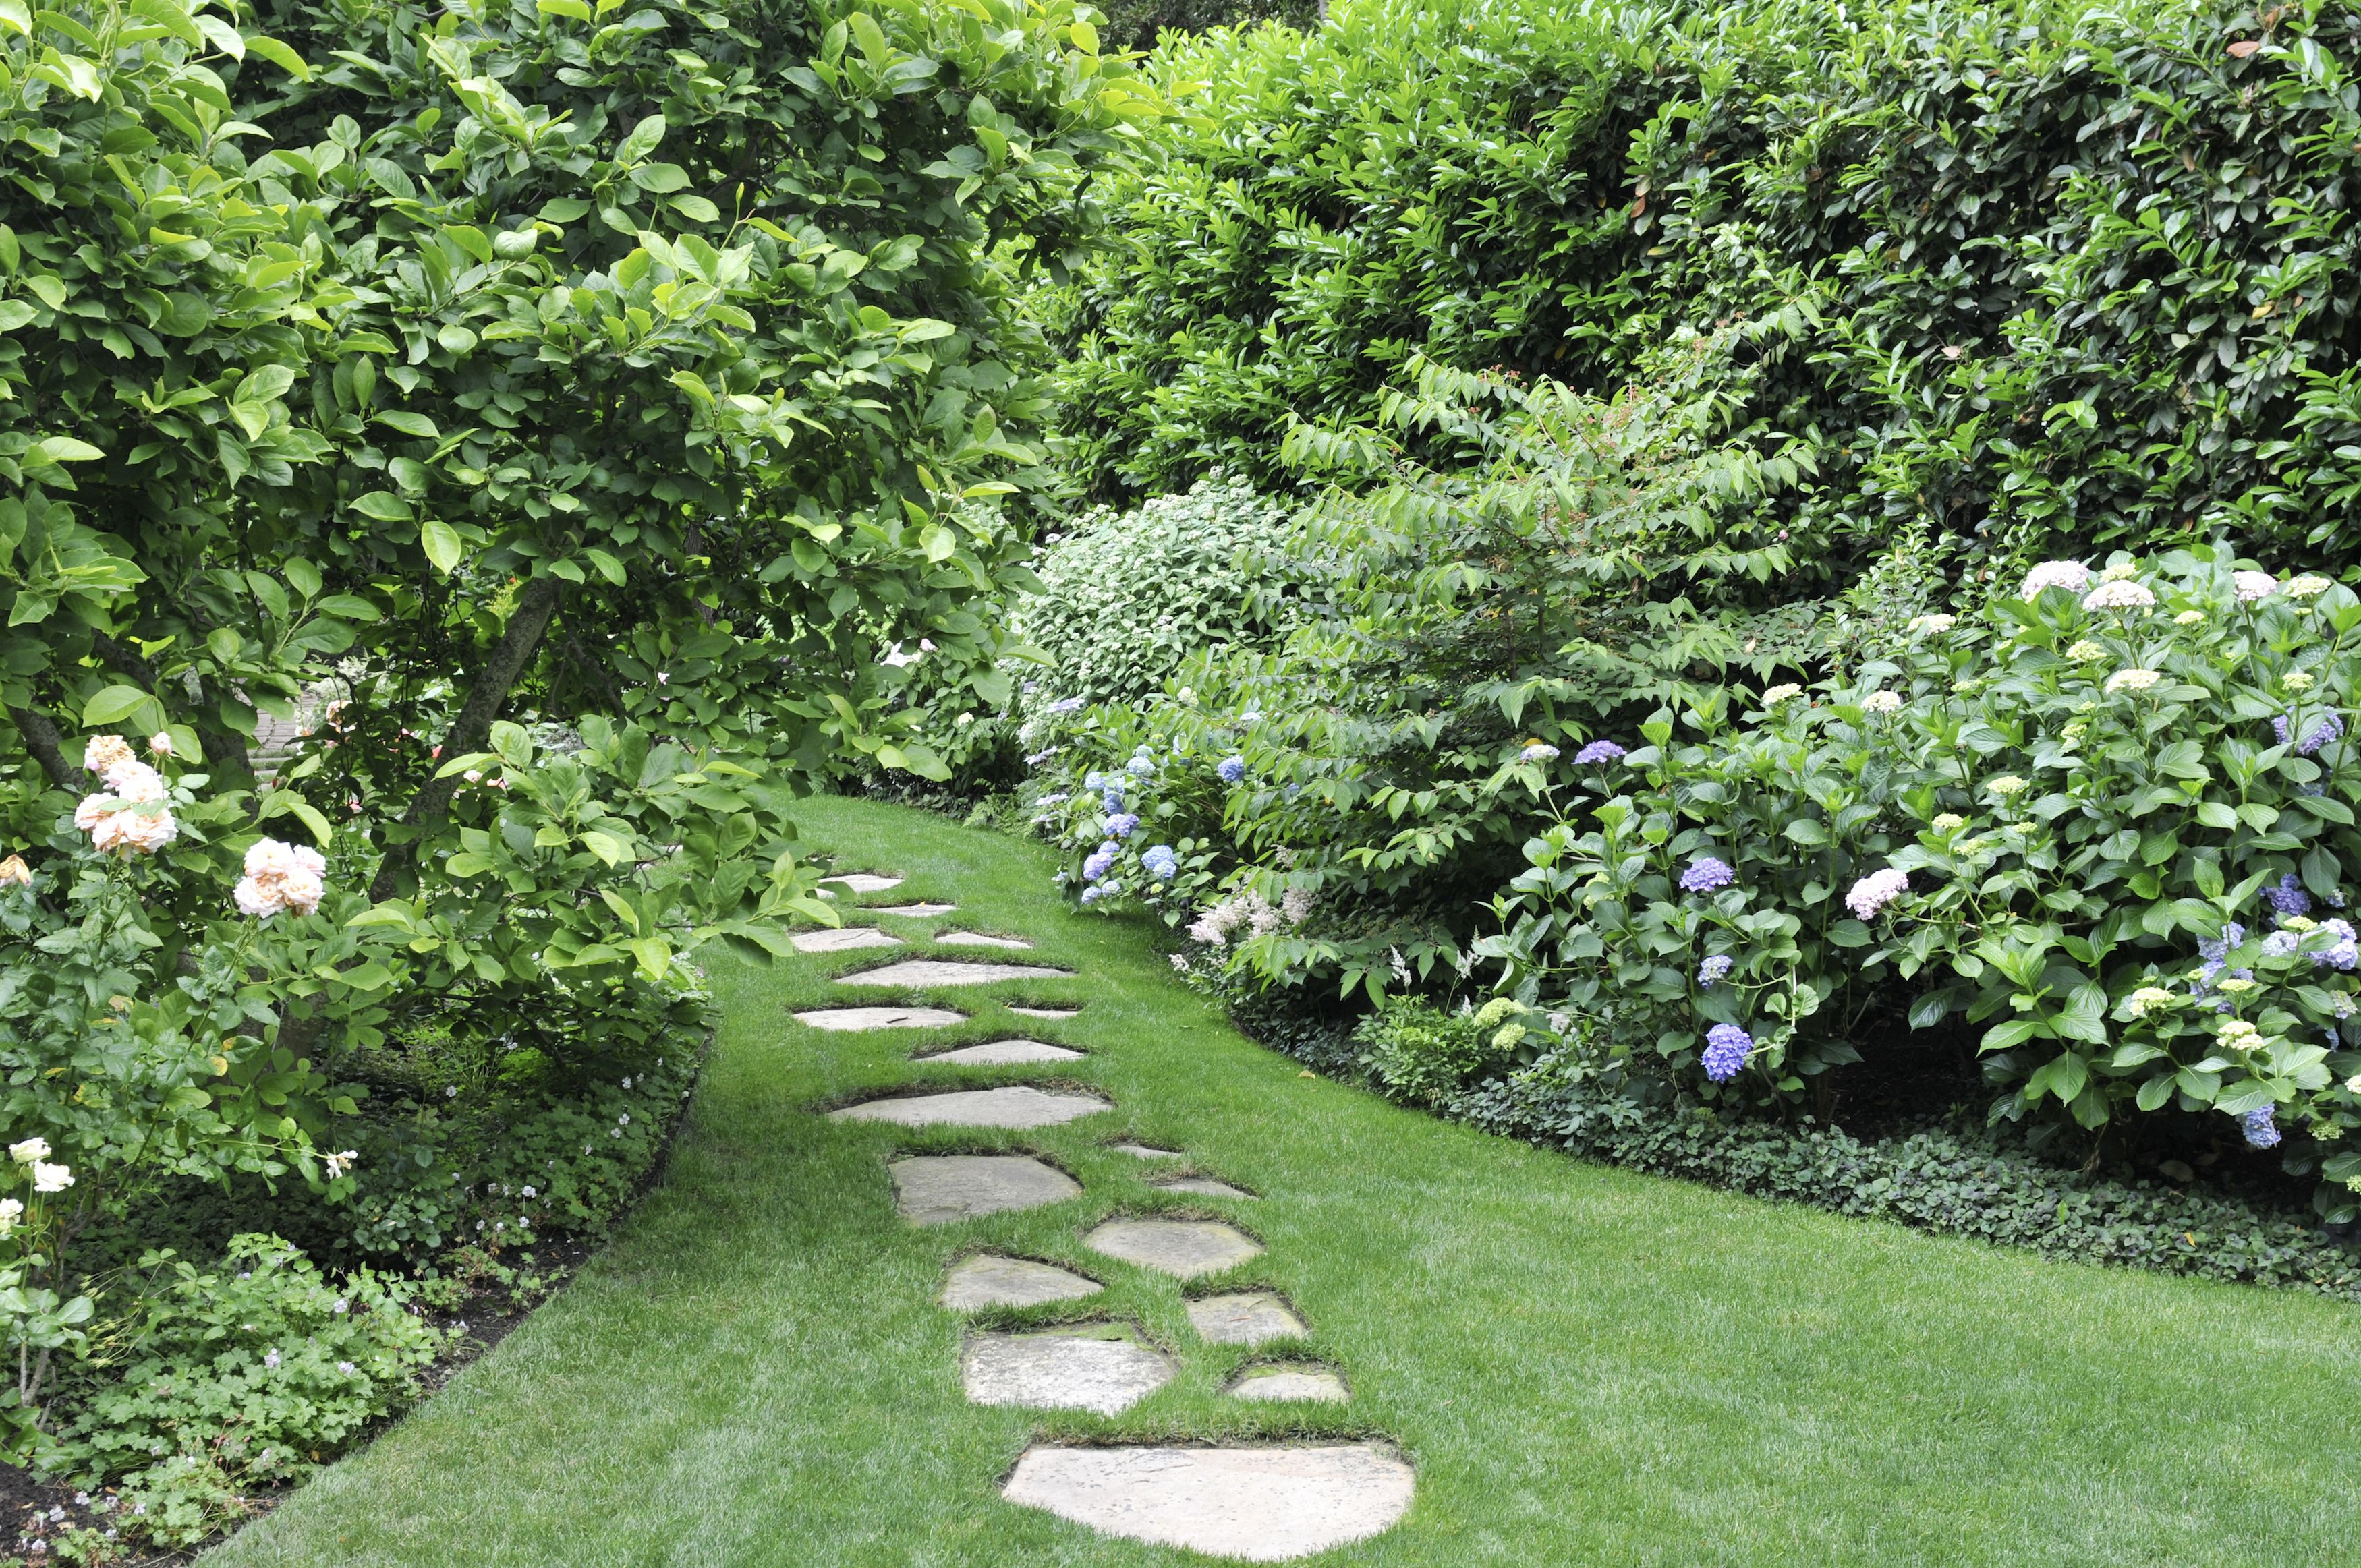 20 Best Yard Landscaping Ideas for Front and Backyard Landscaping